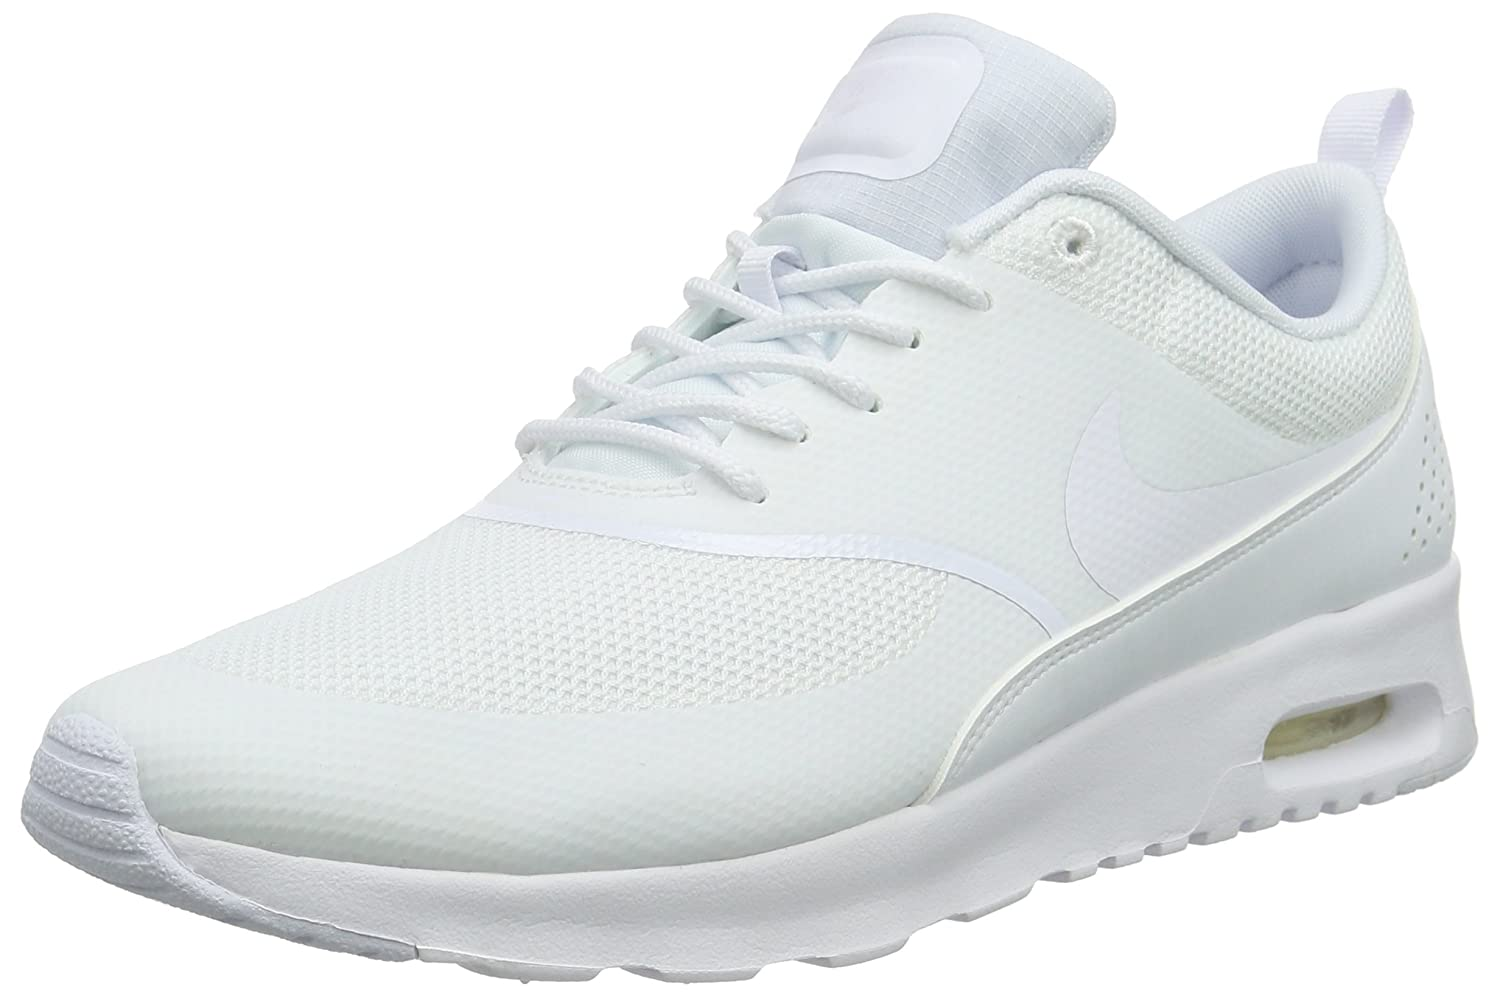 half off e1aea 718cd Nike Air Max Thea, Women Low-Top Sneakers, White (White White), 8.5 UK (43  EU)  Amazon.co.uk  Shoes   Bags